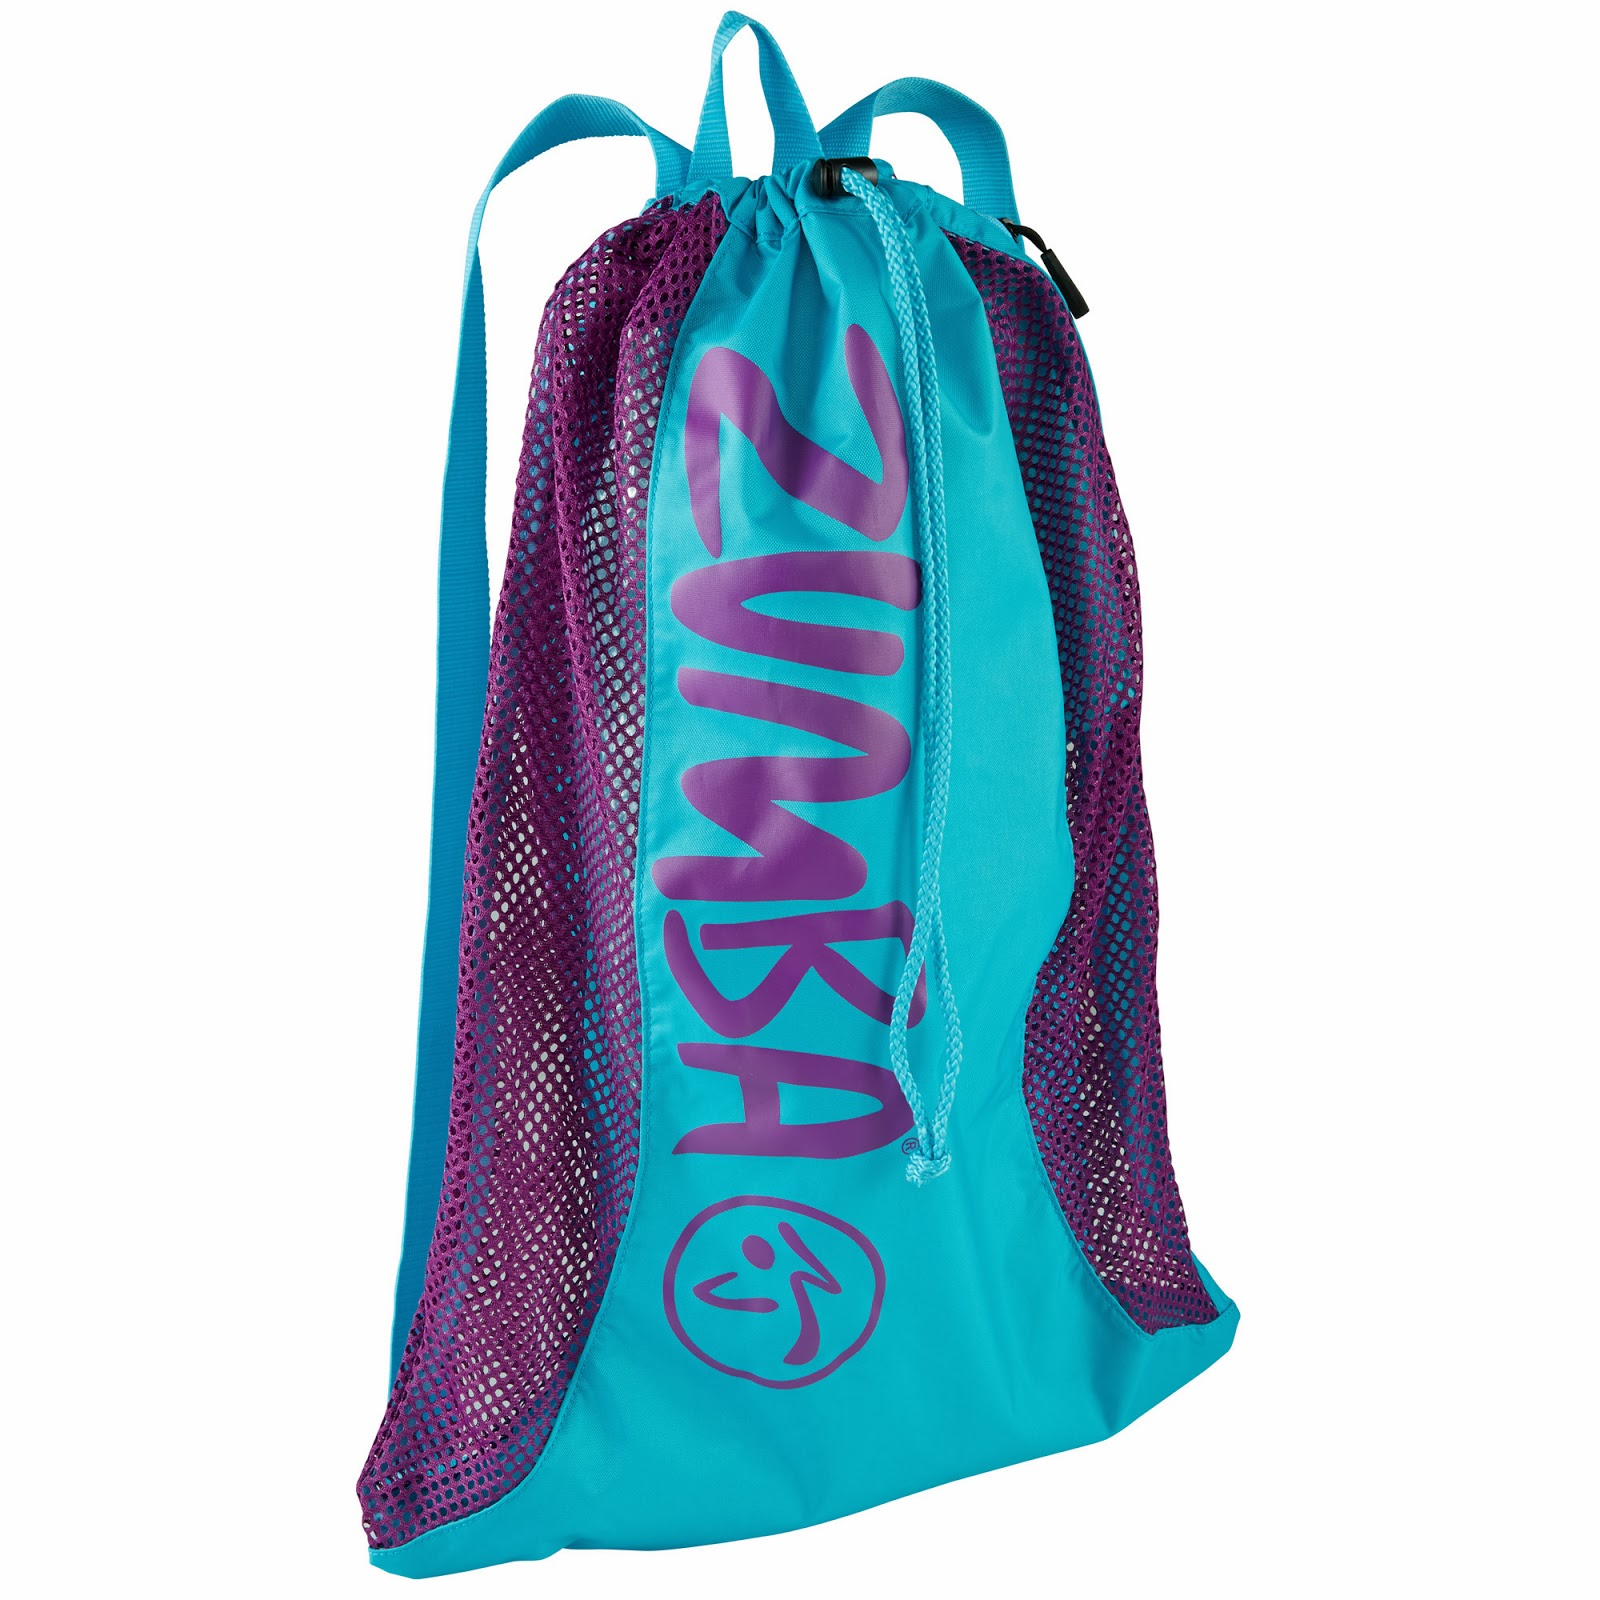 http://www.zumba.com/en-US/store-zin/US/product/together-we-mech-bag?color=Tropical+Teal